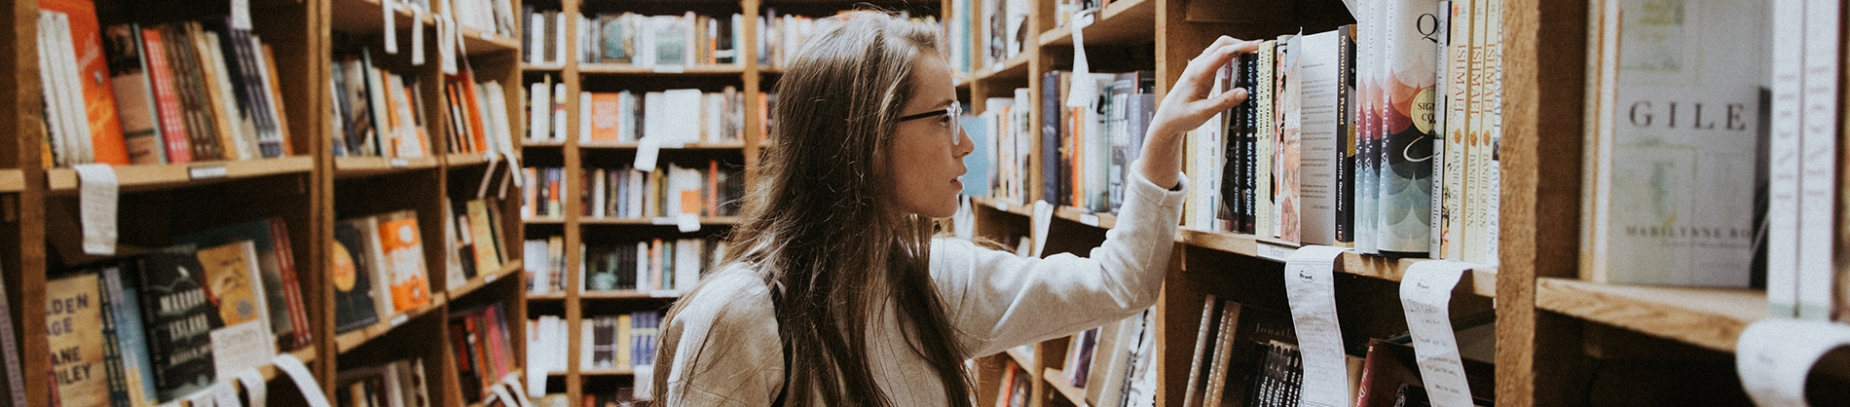 A woman in a library looking through a book shelf